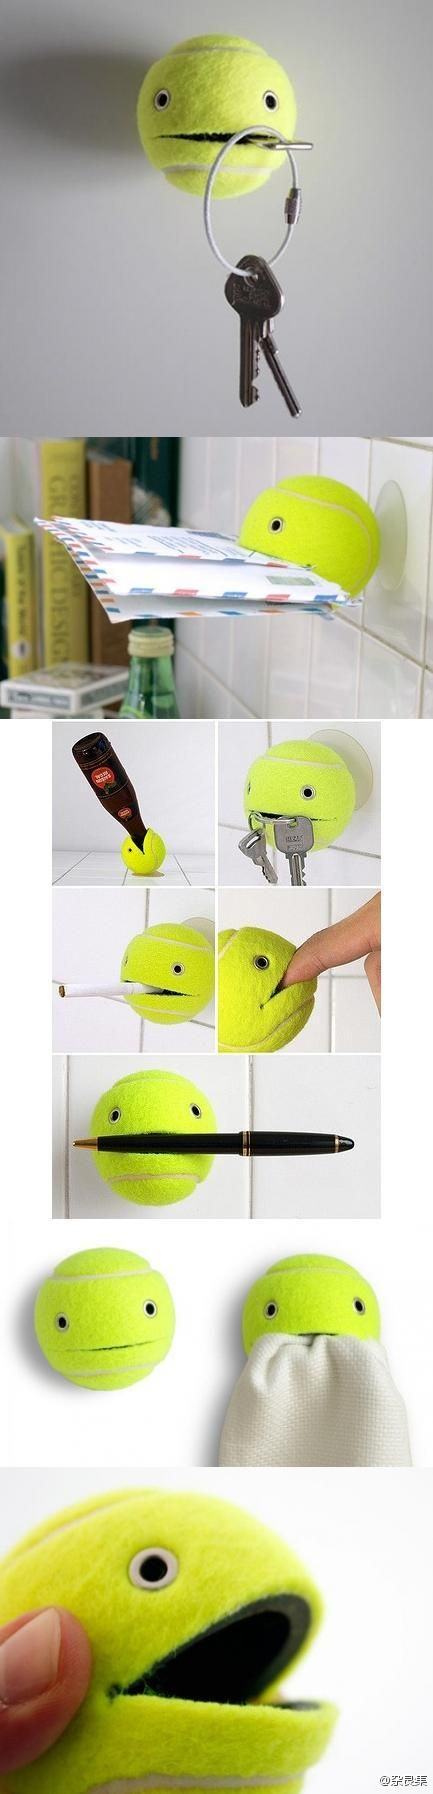 Haha, these so cute and so clever!: Ball Holders, Stuff, Cute Ideas, Things, Keys Holders, Diy, Tennis Ball, Crafts